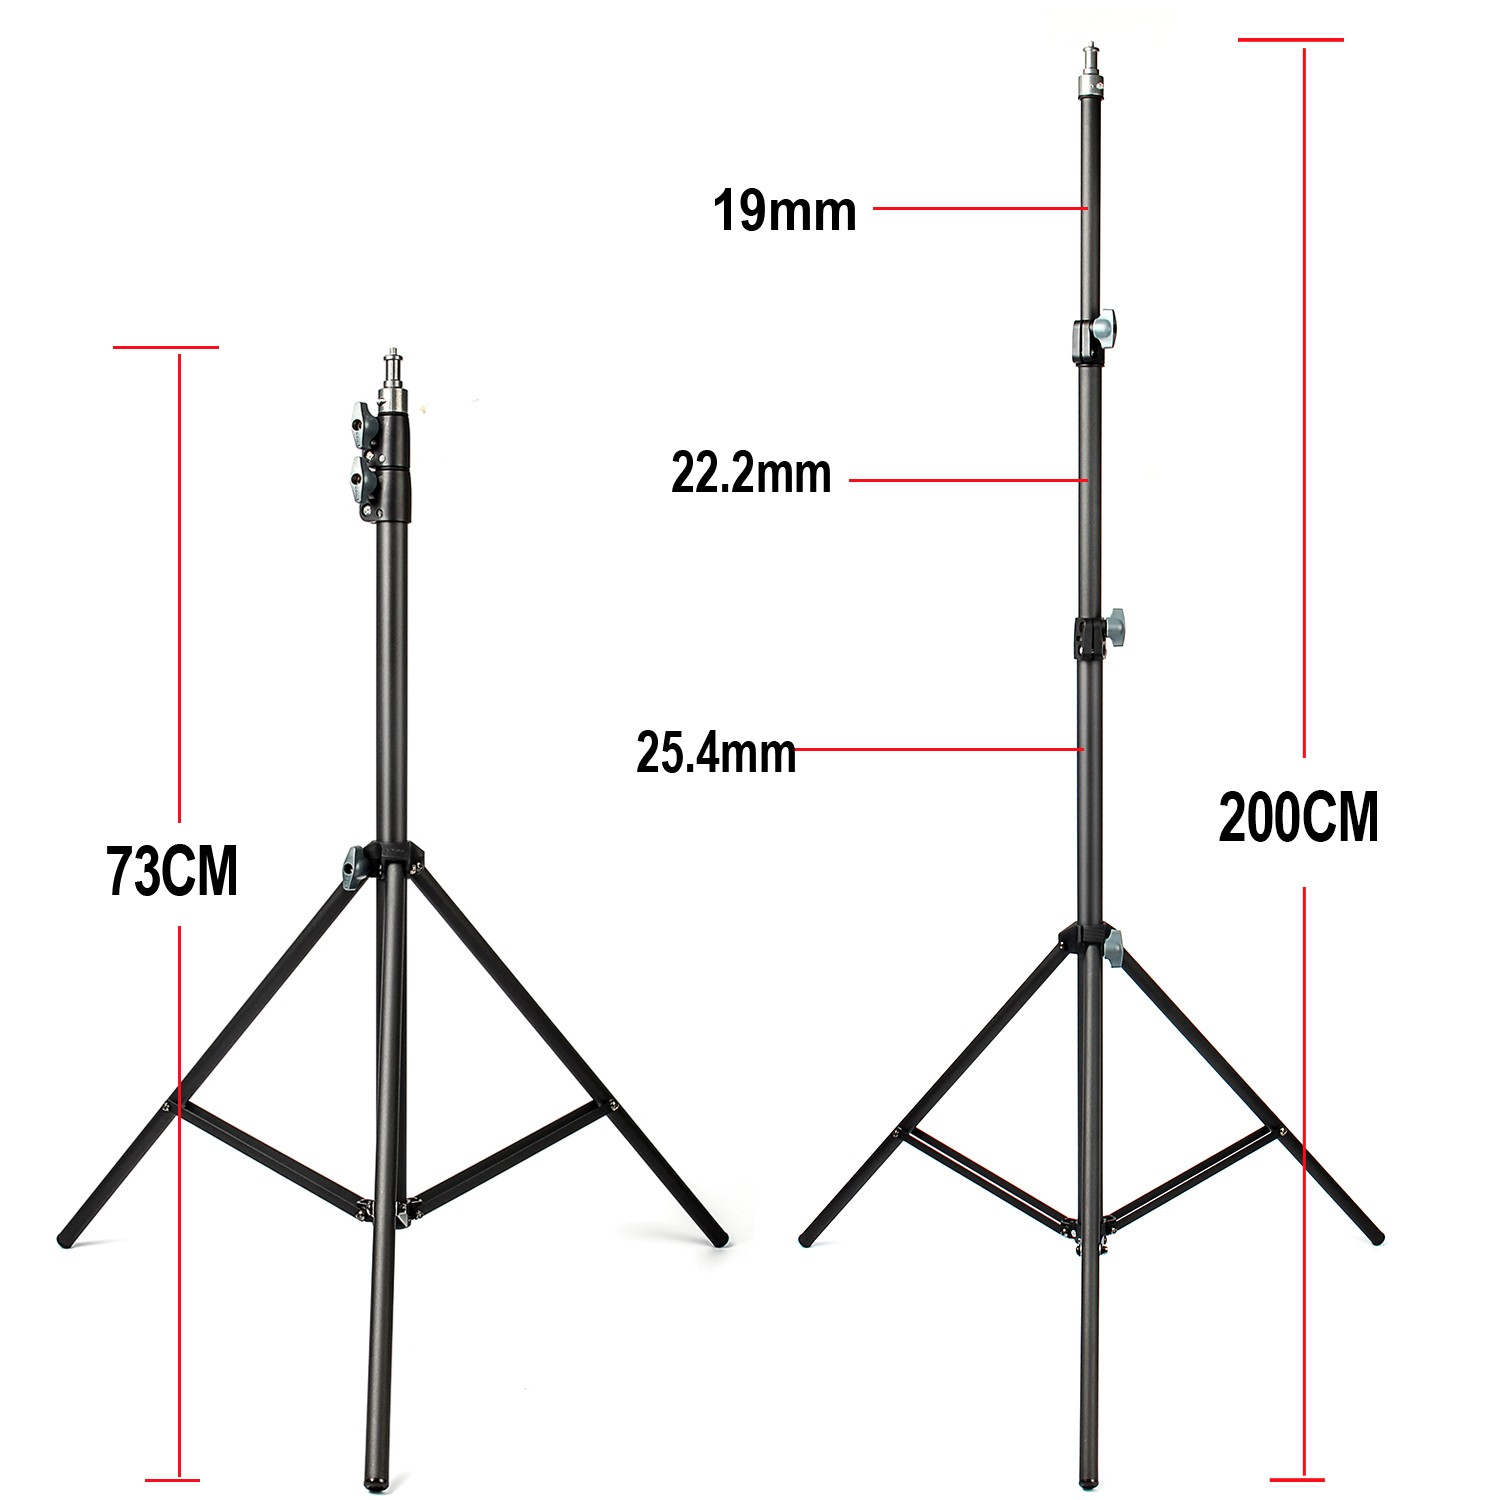 Iconnapp Champion Ultrastar Wiring Diagram 2m Light Stand Tripod With 1 4 Screw Head Bearing Weight 5kg For Studio Softbox Flash Umbrellas Reflector Lighting Flashgun Lam